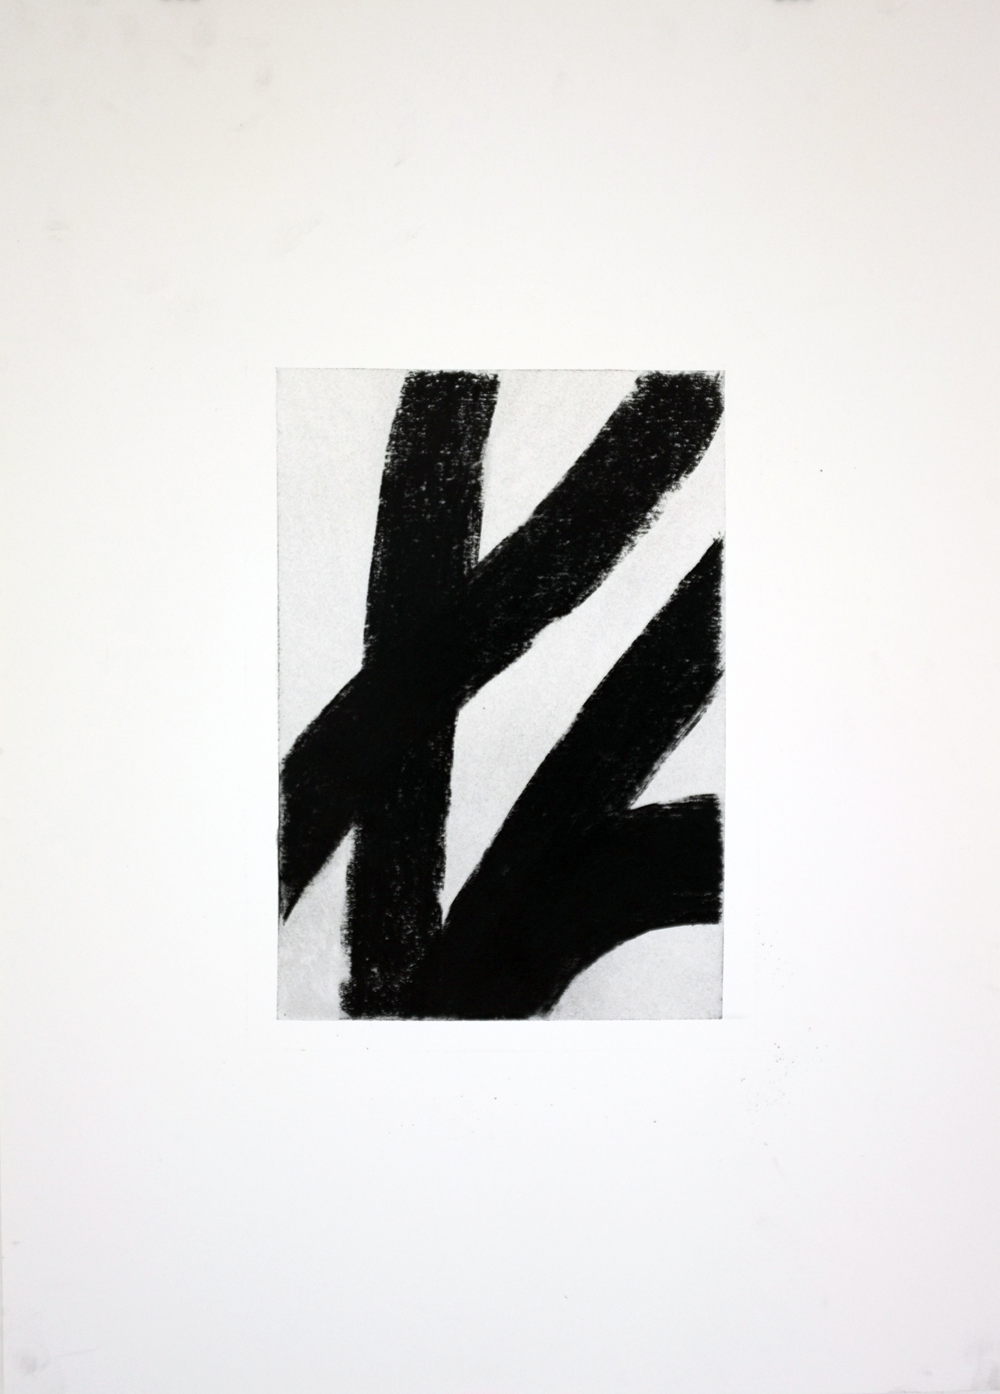 Kenneth Jaworski- Monochrome Figure II No. 3 (Batavia). Charcoal on paper. 50cm x 70cm. Signed and stamped on reverse. For inquiries, please contact the artist.